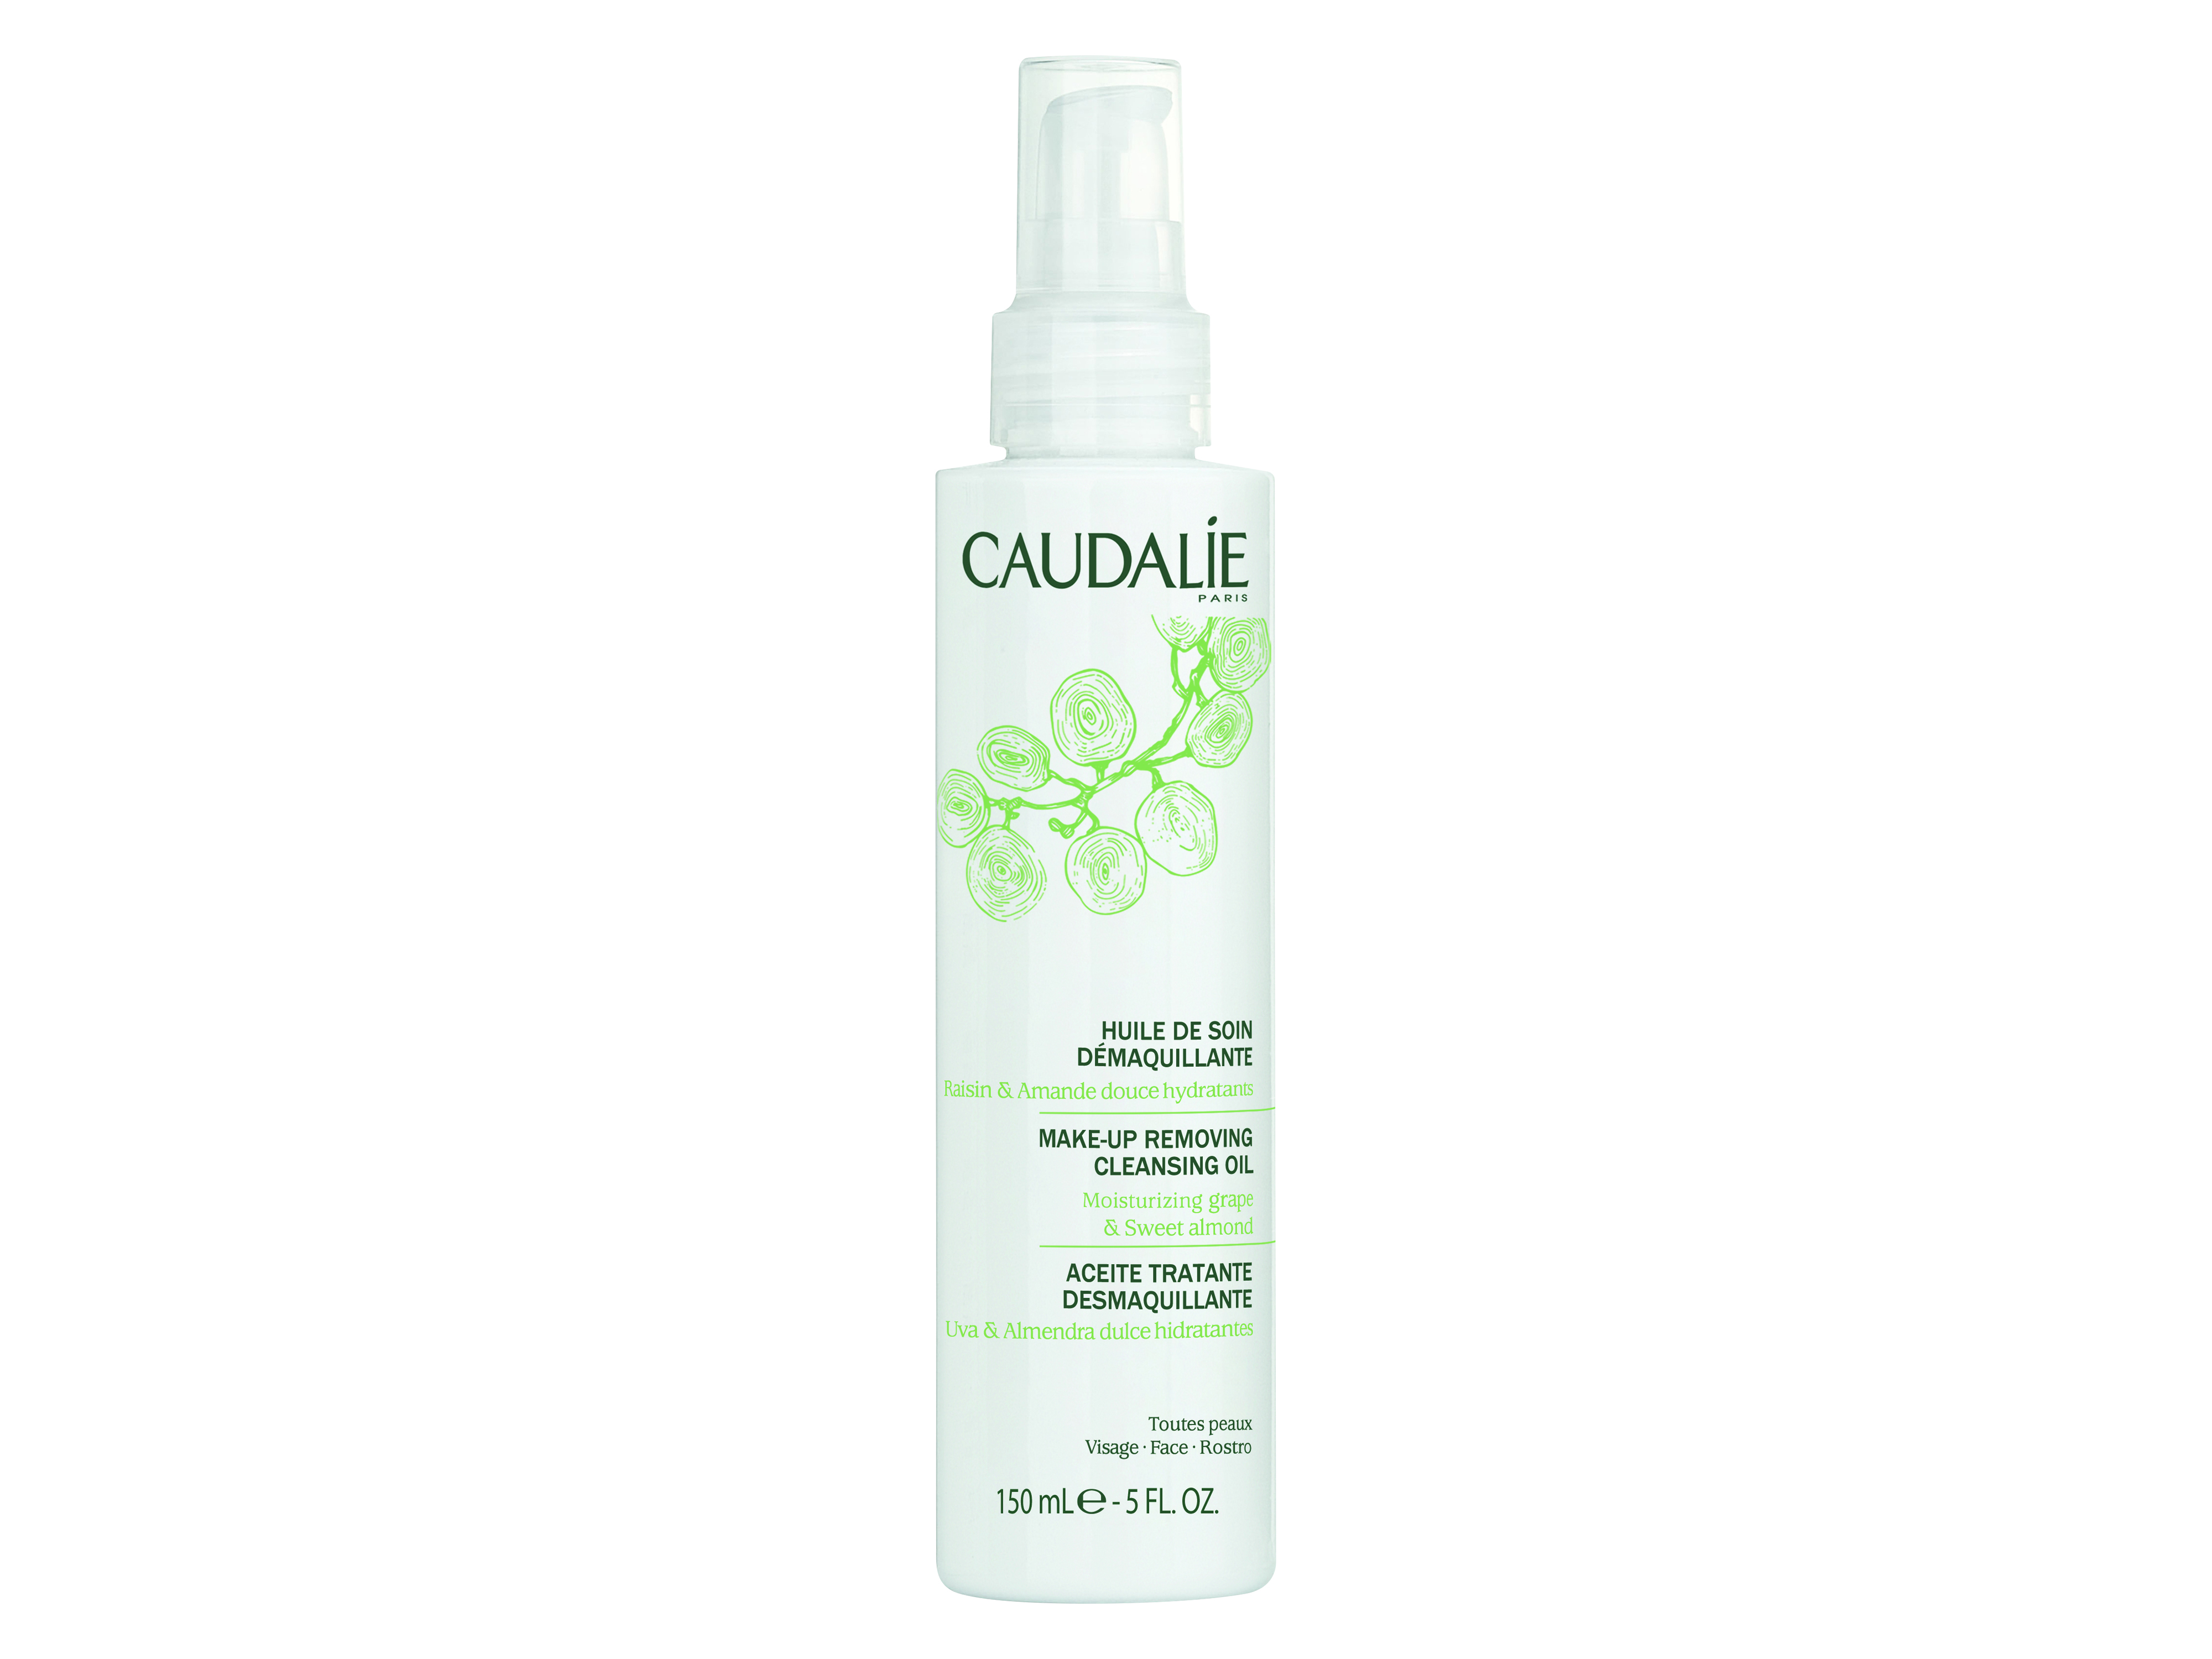 Caudalie Makeup Removing Cleansing Oil, 150 ml